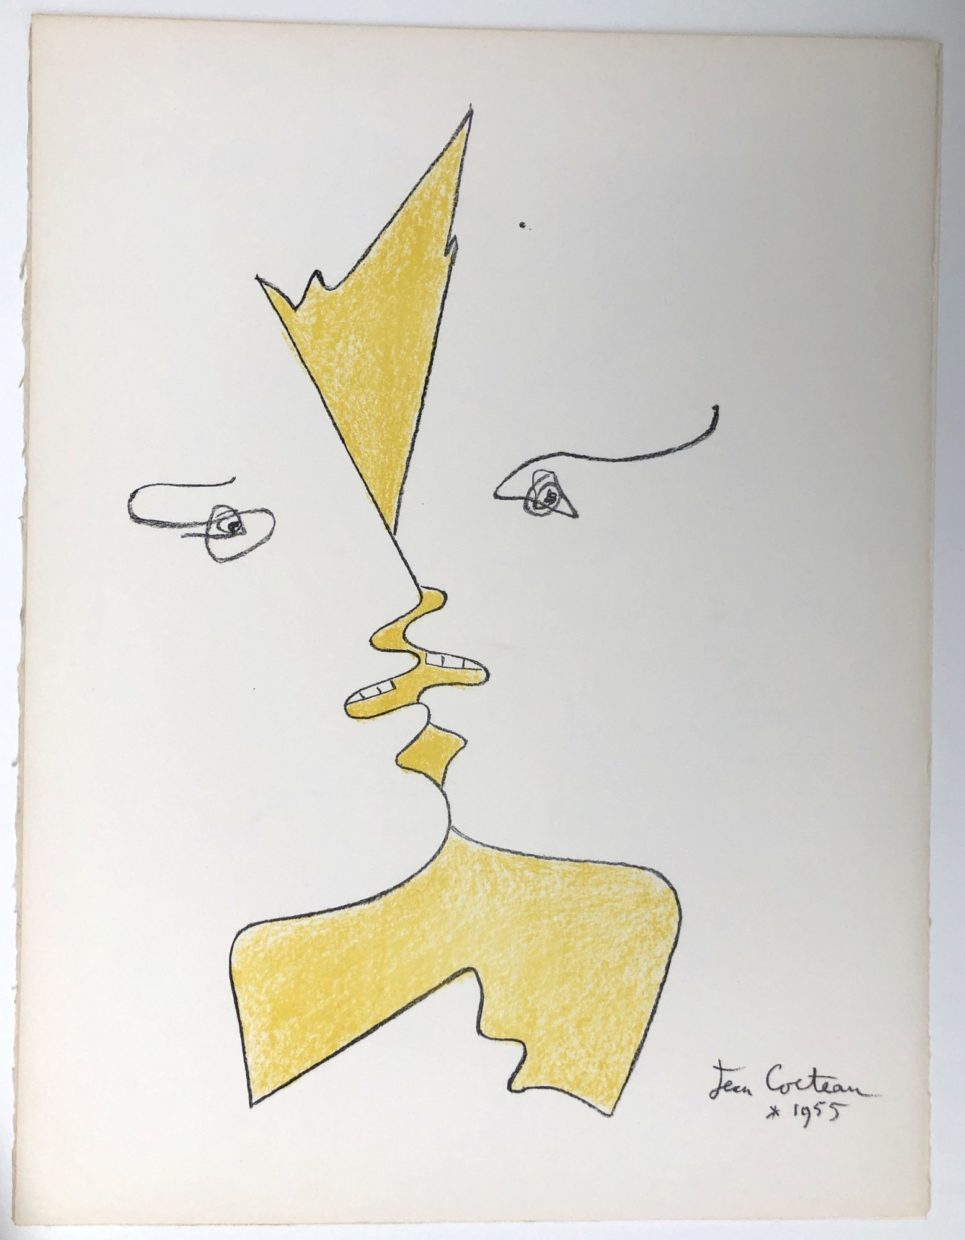 jean-cocteau-the-kiss-full-page